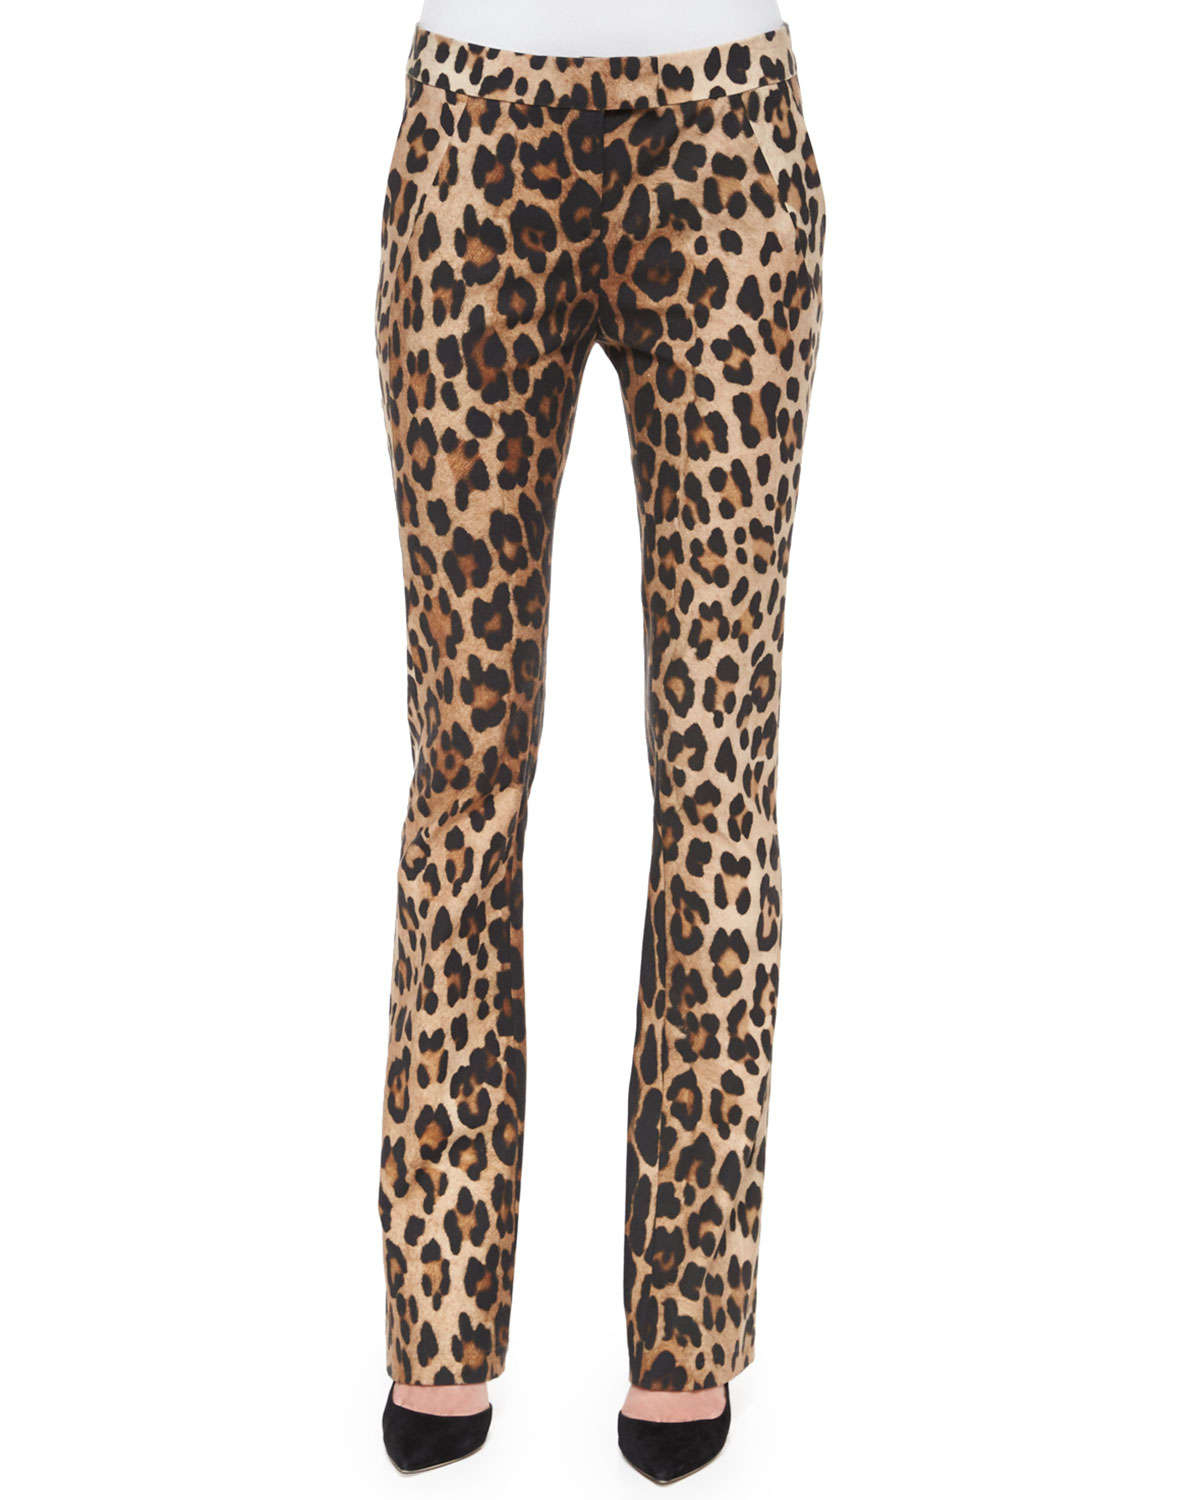 Women's Brown Get It Hit It Velvet Leopard Pant $ 45 From AKIRA Price last checked 28 minutes ago Product prices and availability are accurate as of the date/time indicated and are subject to change.